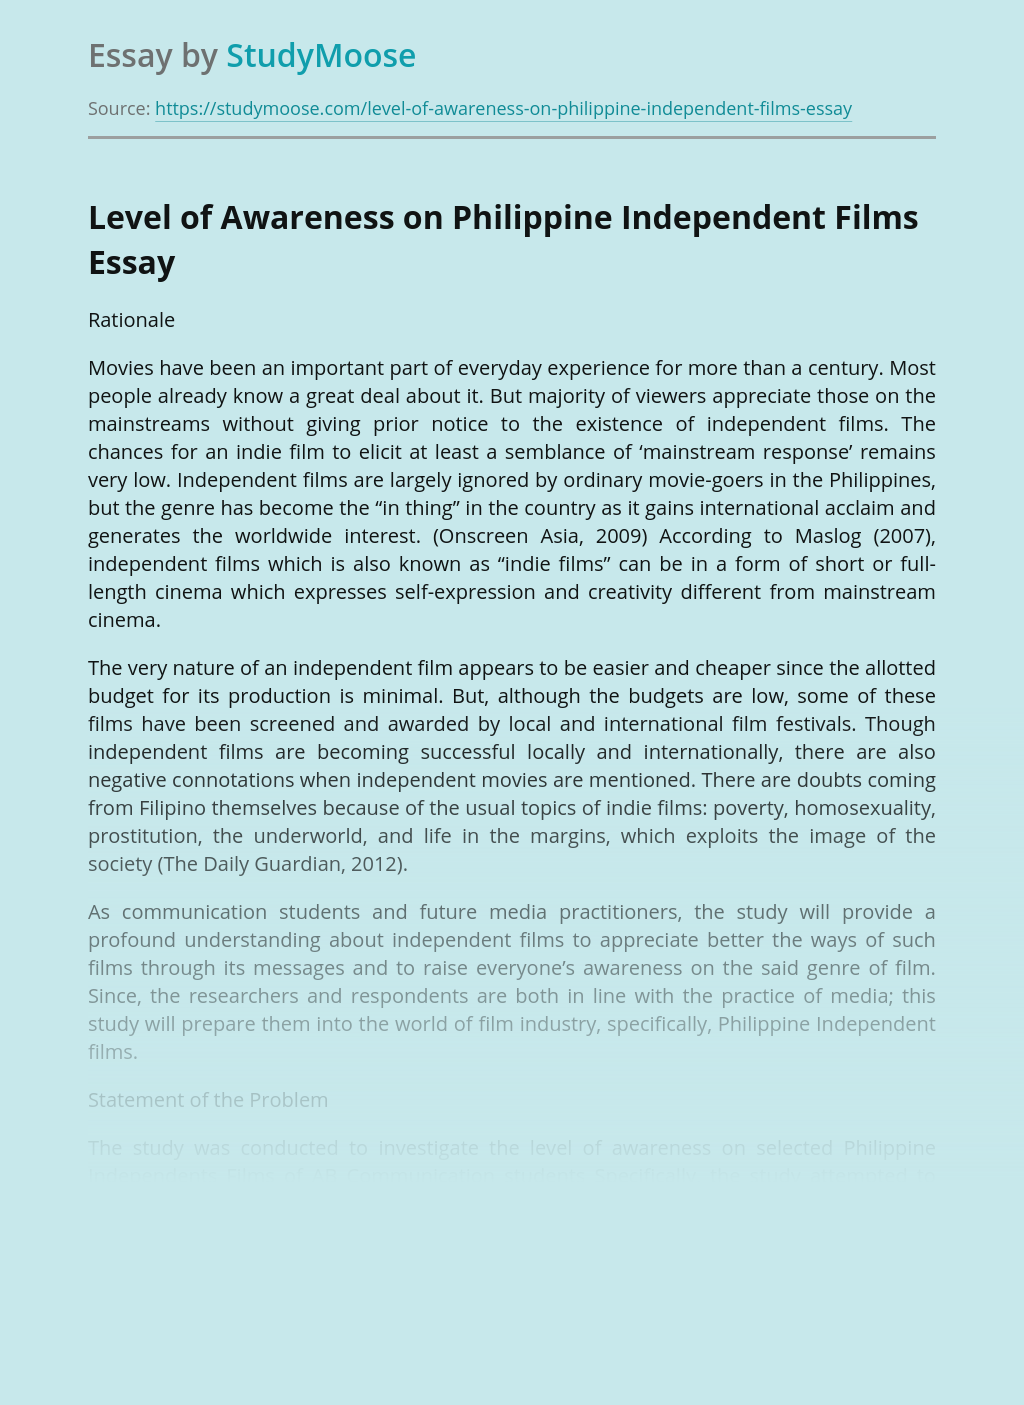 Level of Awareness on Philippine Independent Films